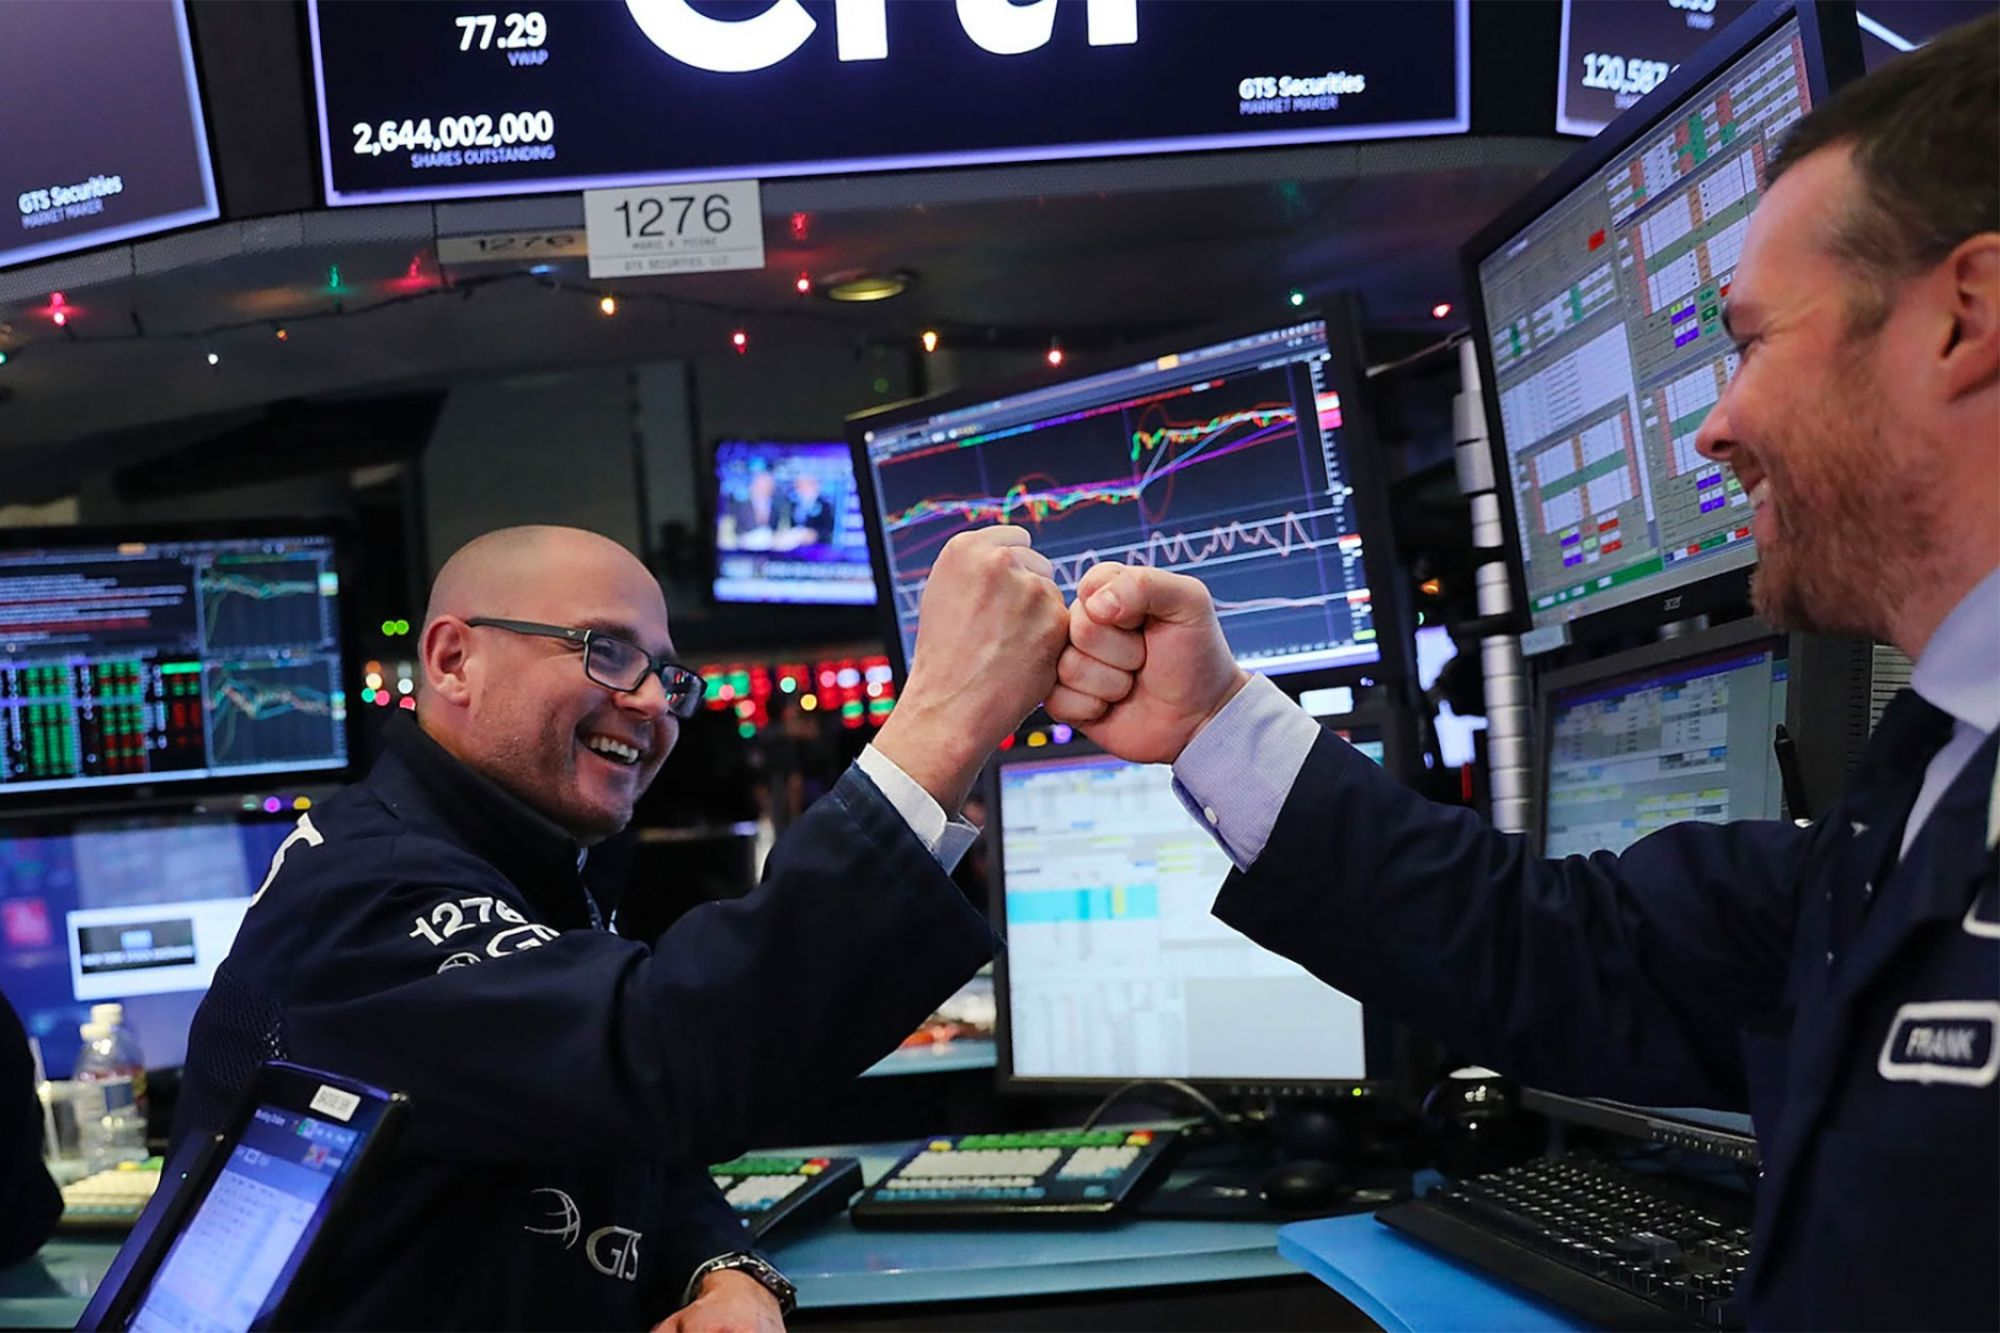 'A Real Step Forward': Stocks Climb After Lawmakers Agree on $2 Trillion Coronavirus Stimulus